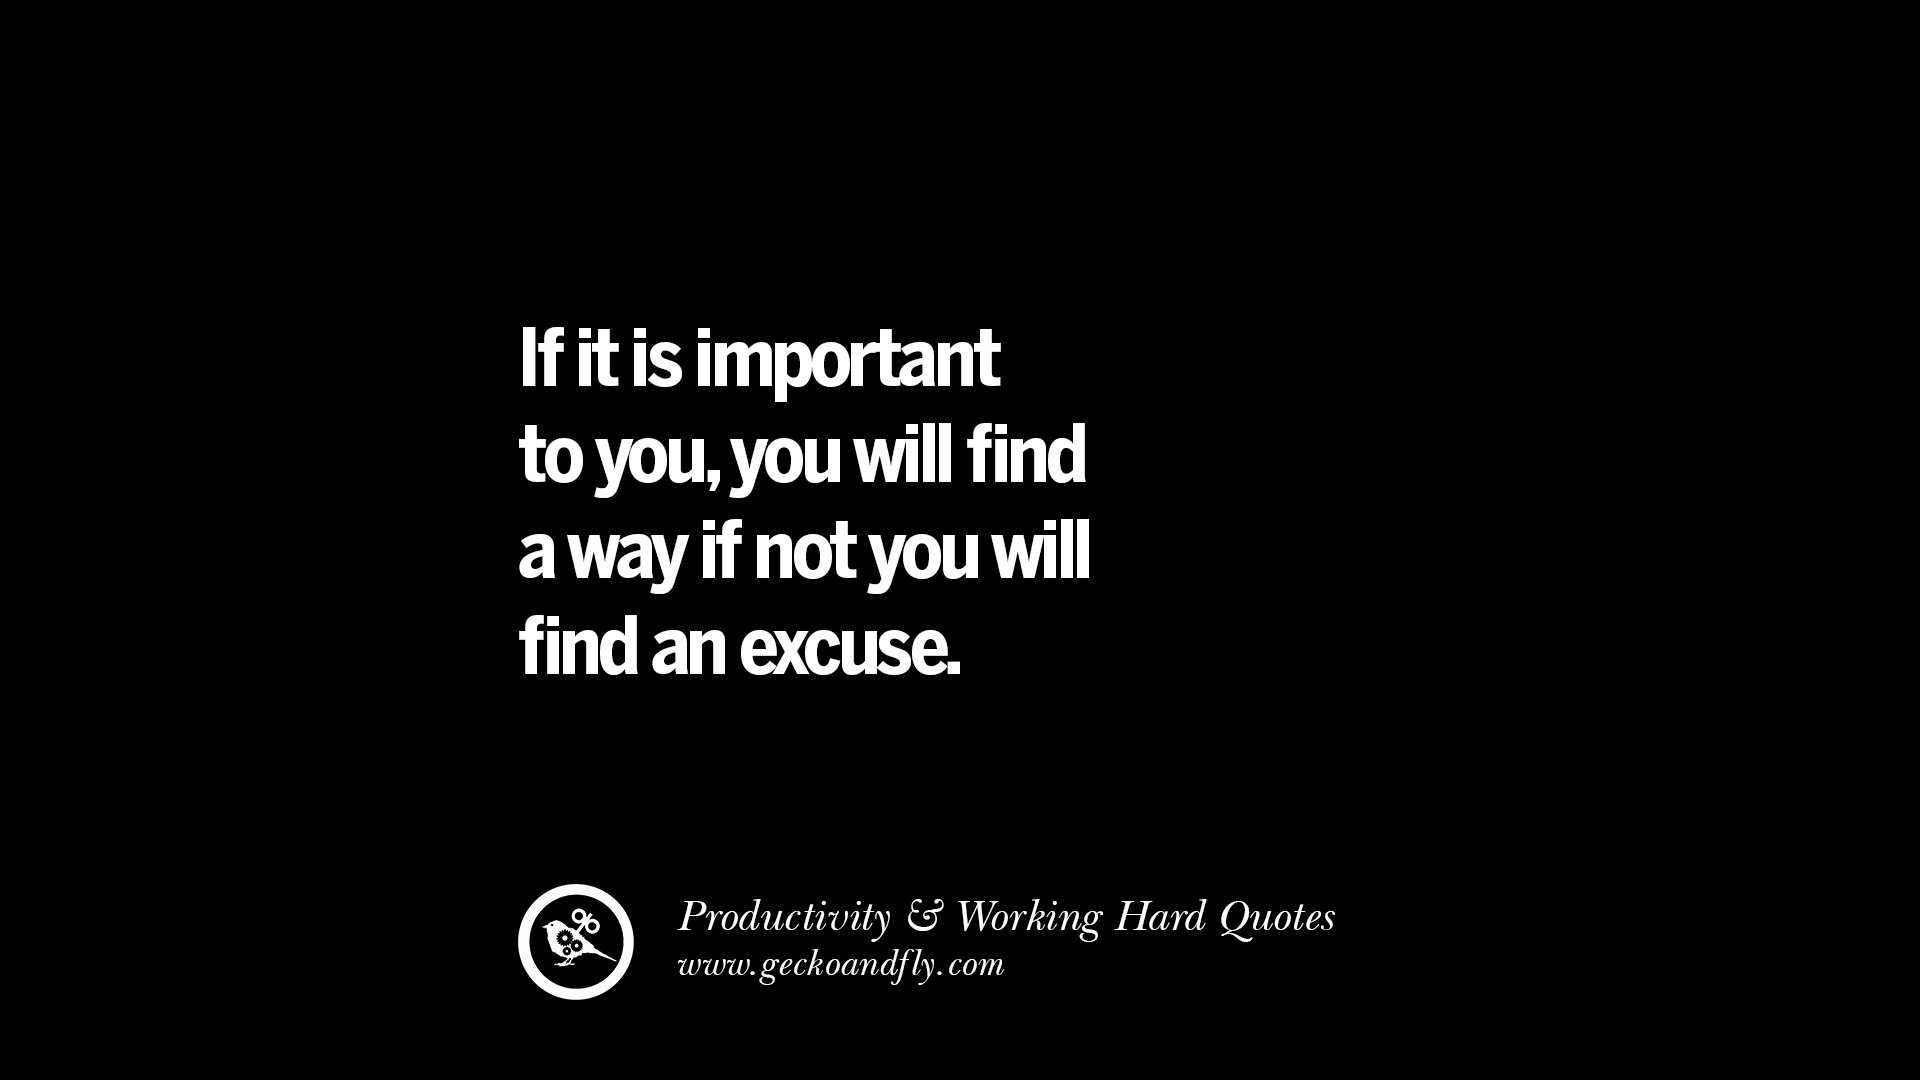 30 uplifting quotes on increasing productivity and working hard if it is important to you you will a way if not you will an excuse work harder